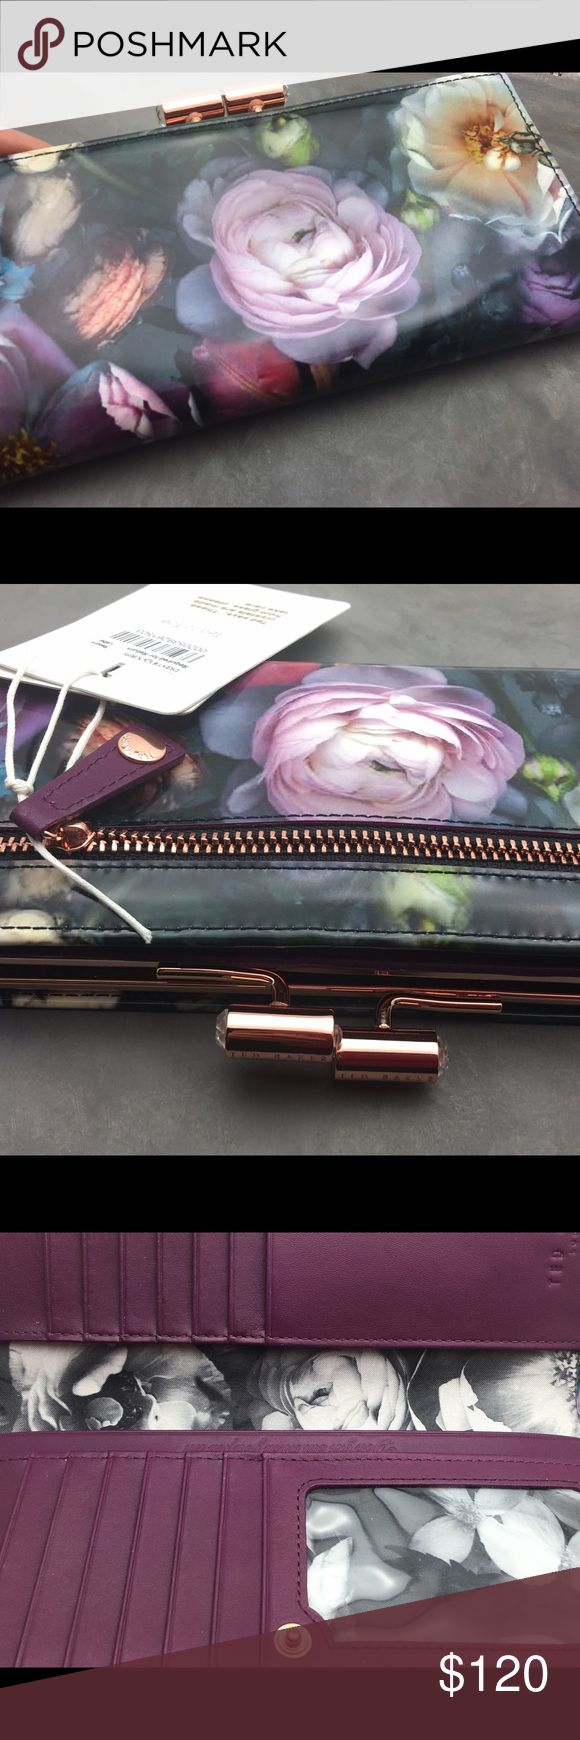 Flash sale Ted Baker floral wallet Hard to find, a most stunning floral wallet by Tad Baker. I usually need  big wallets and I find these Ted Baker's wall yes to be prefect for my needs. They contain a lot and look amazing. Feel so luxurious and pretty you will be in love in seconds. I highly recommend trying this one by TB. New with Tag, never used. Ted Baker Bags Wallets